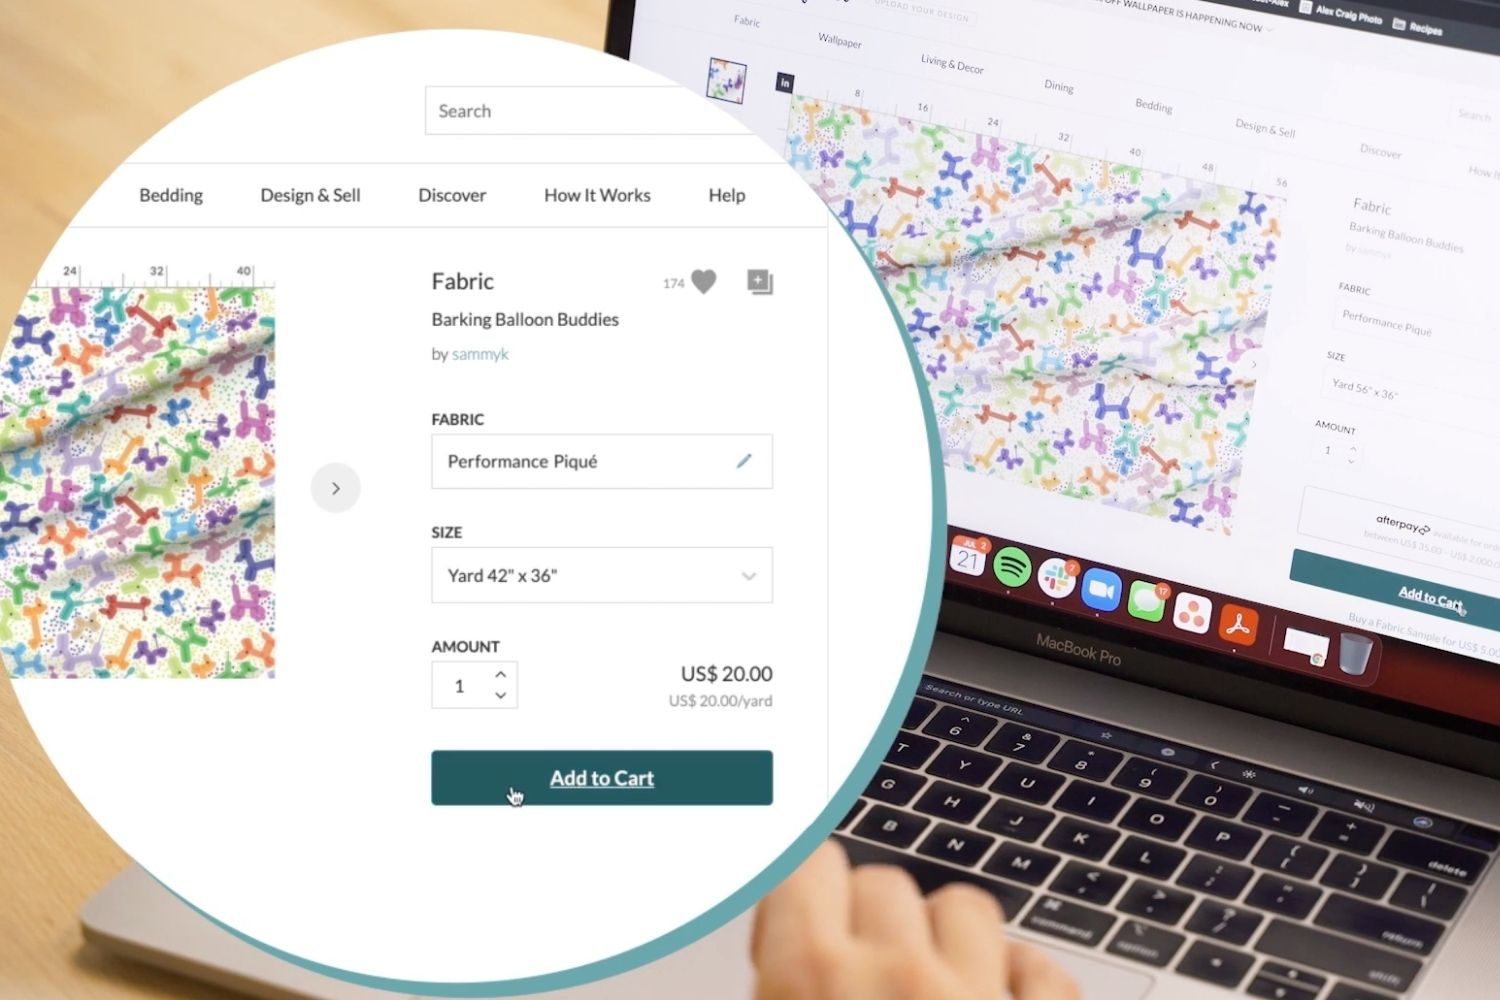 Ordering a yard of balloon animal fabric from Spoonflower.com